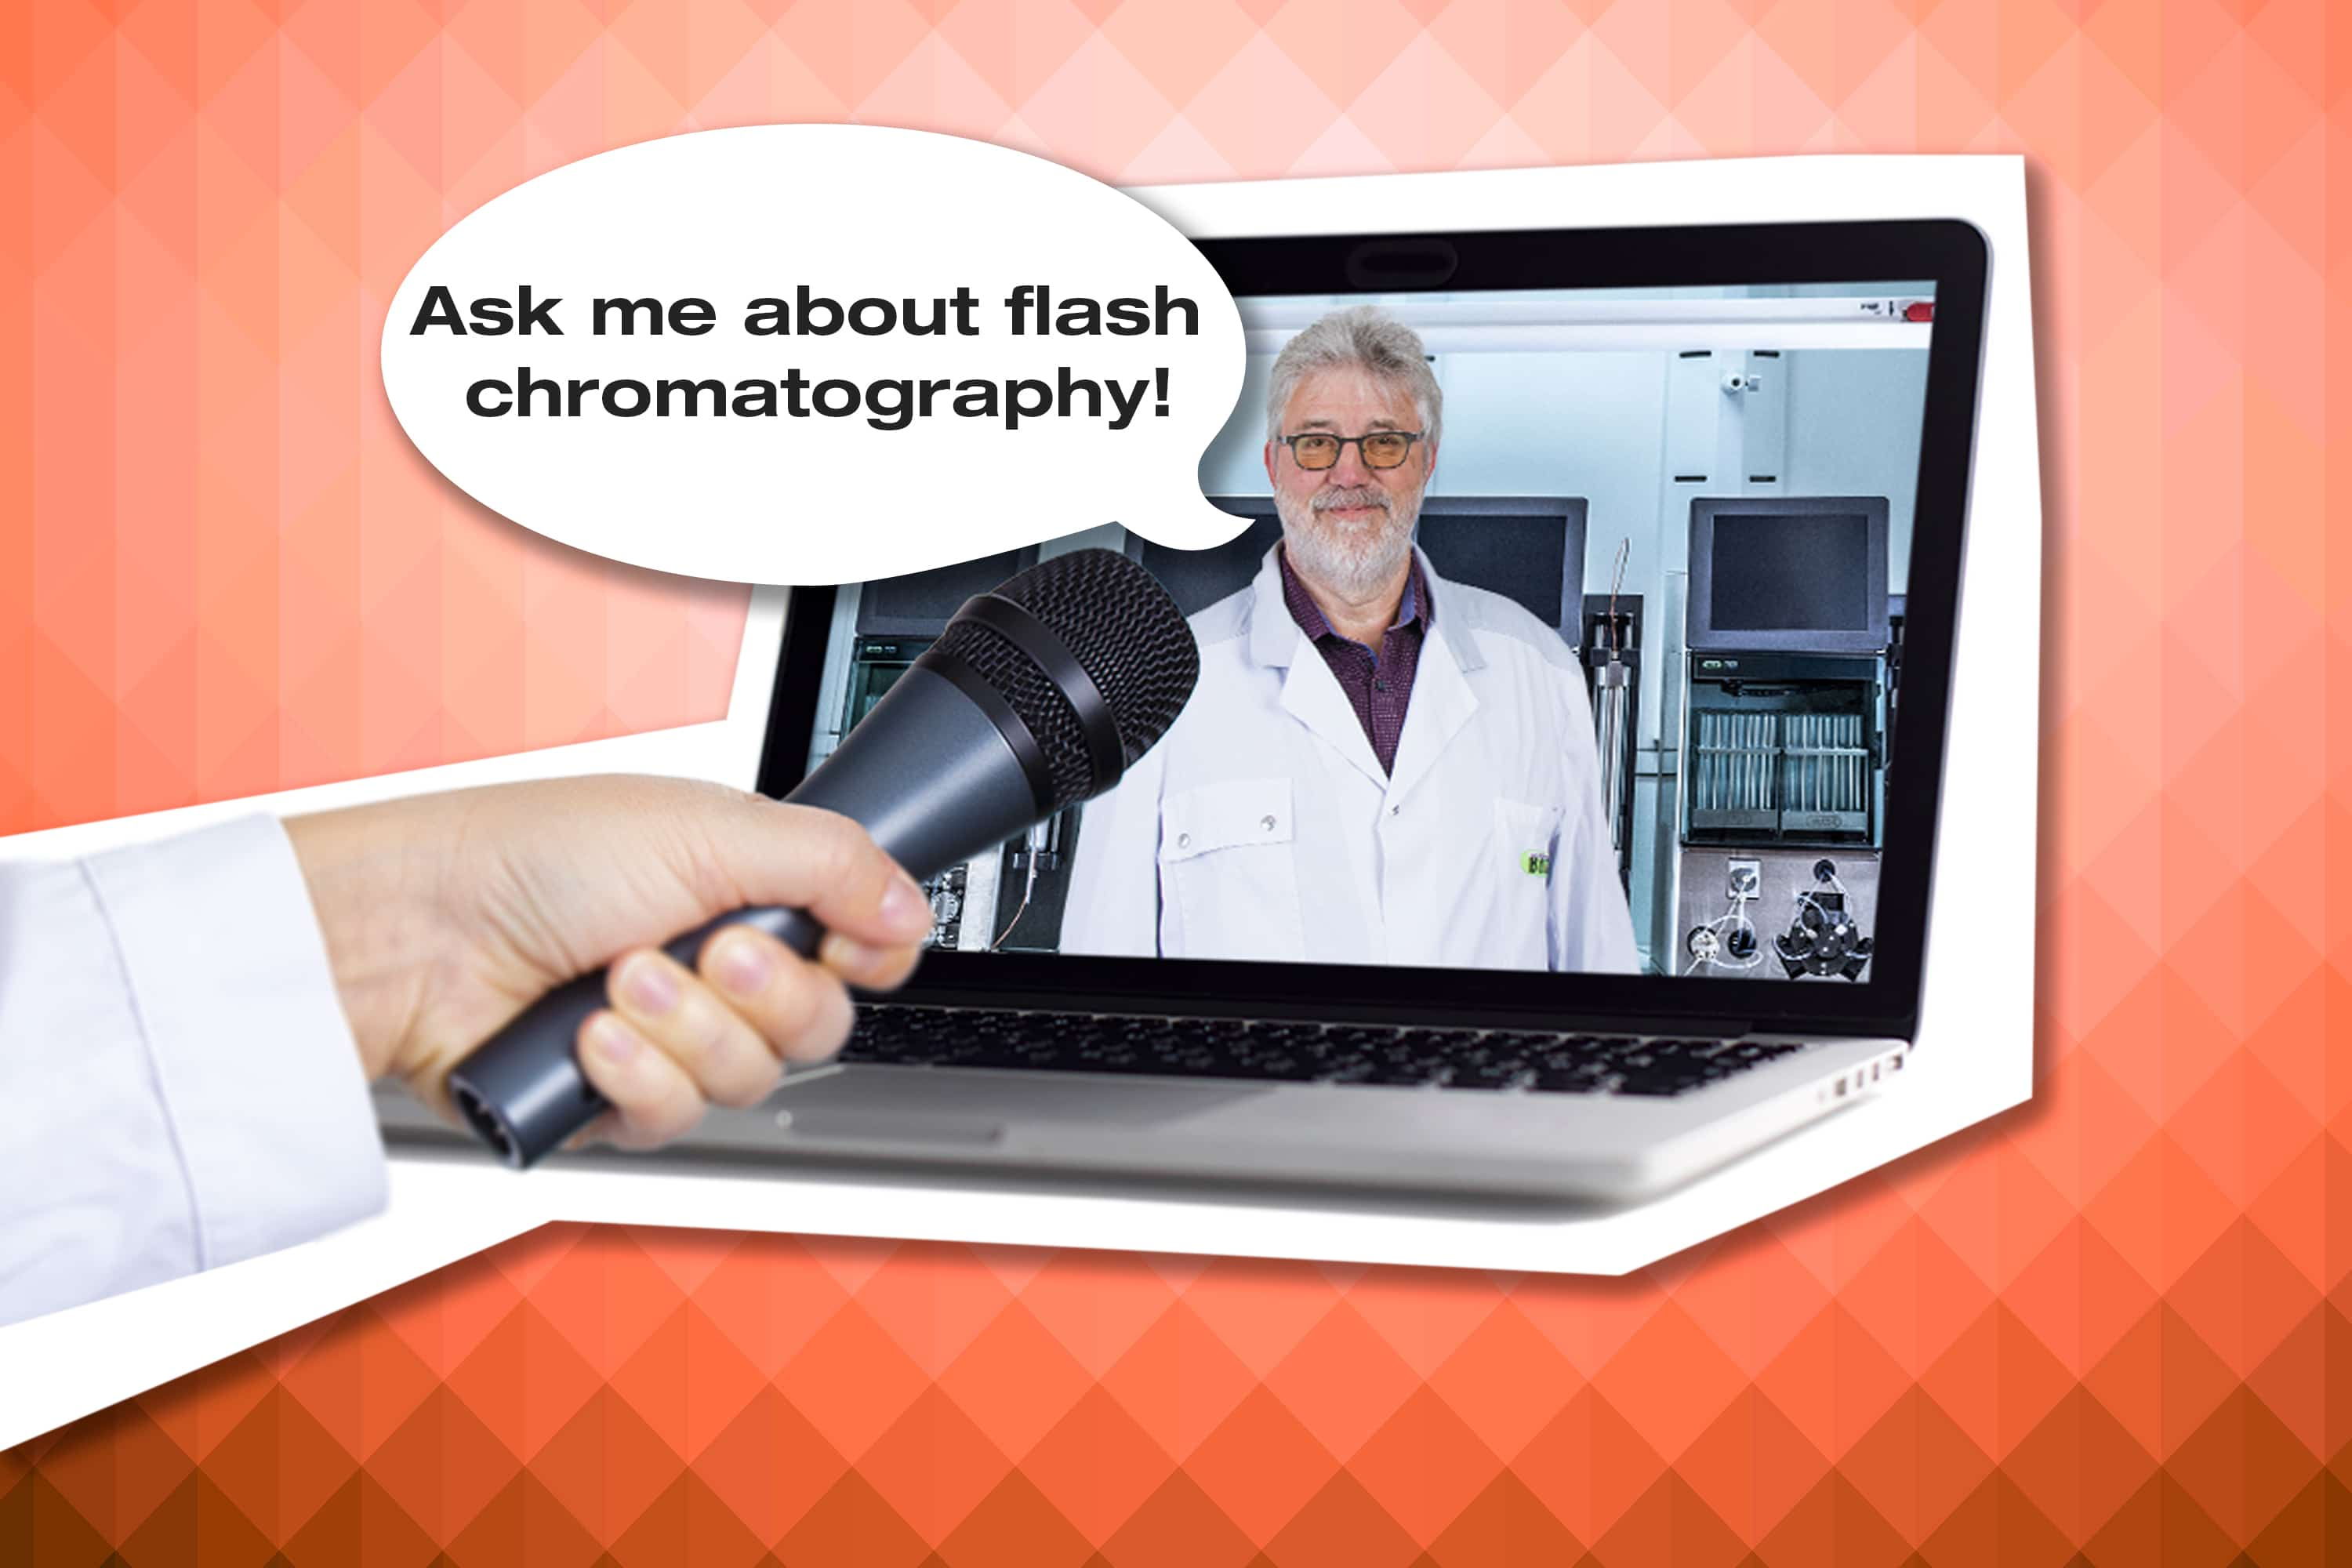 chromatography webinar, preparative chromatography, flash chromatography, chromatography questions